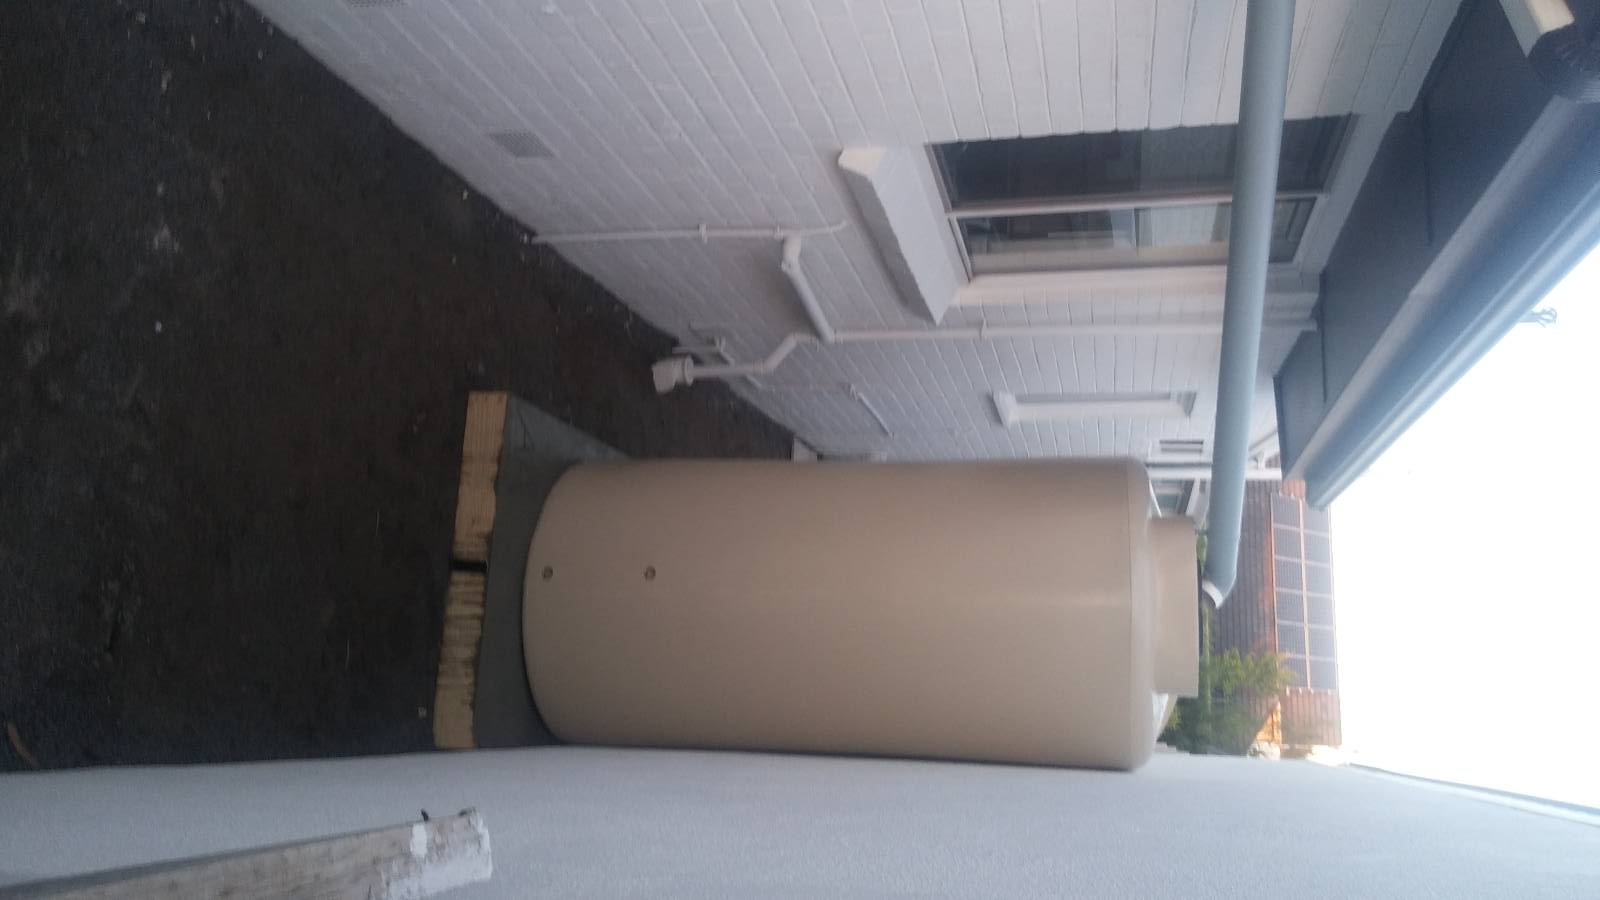 Neighbour installed water tank right next to my garage wall!